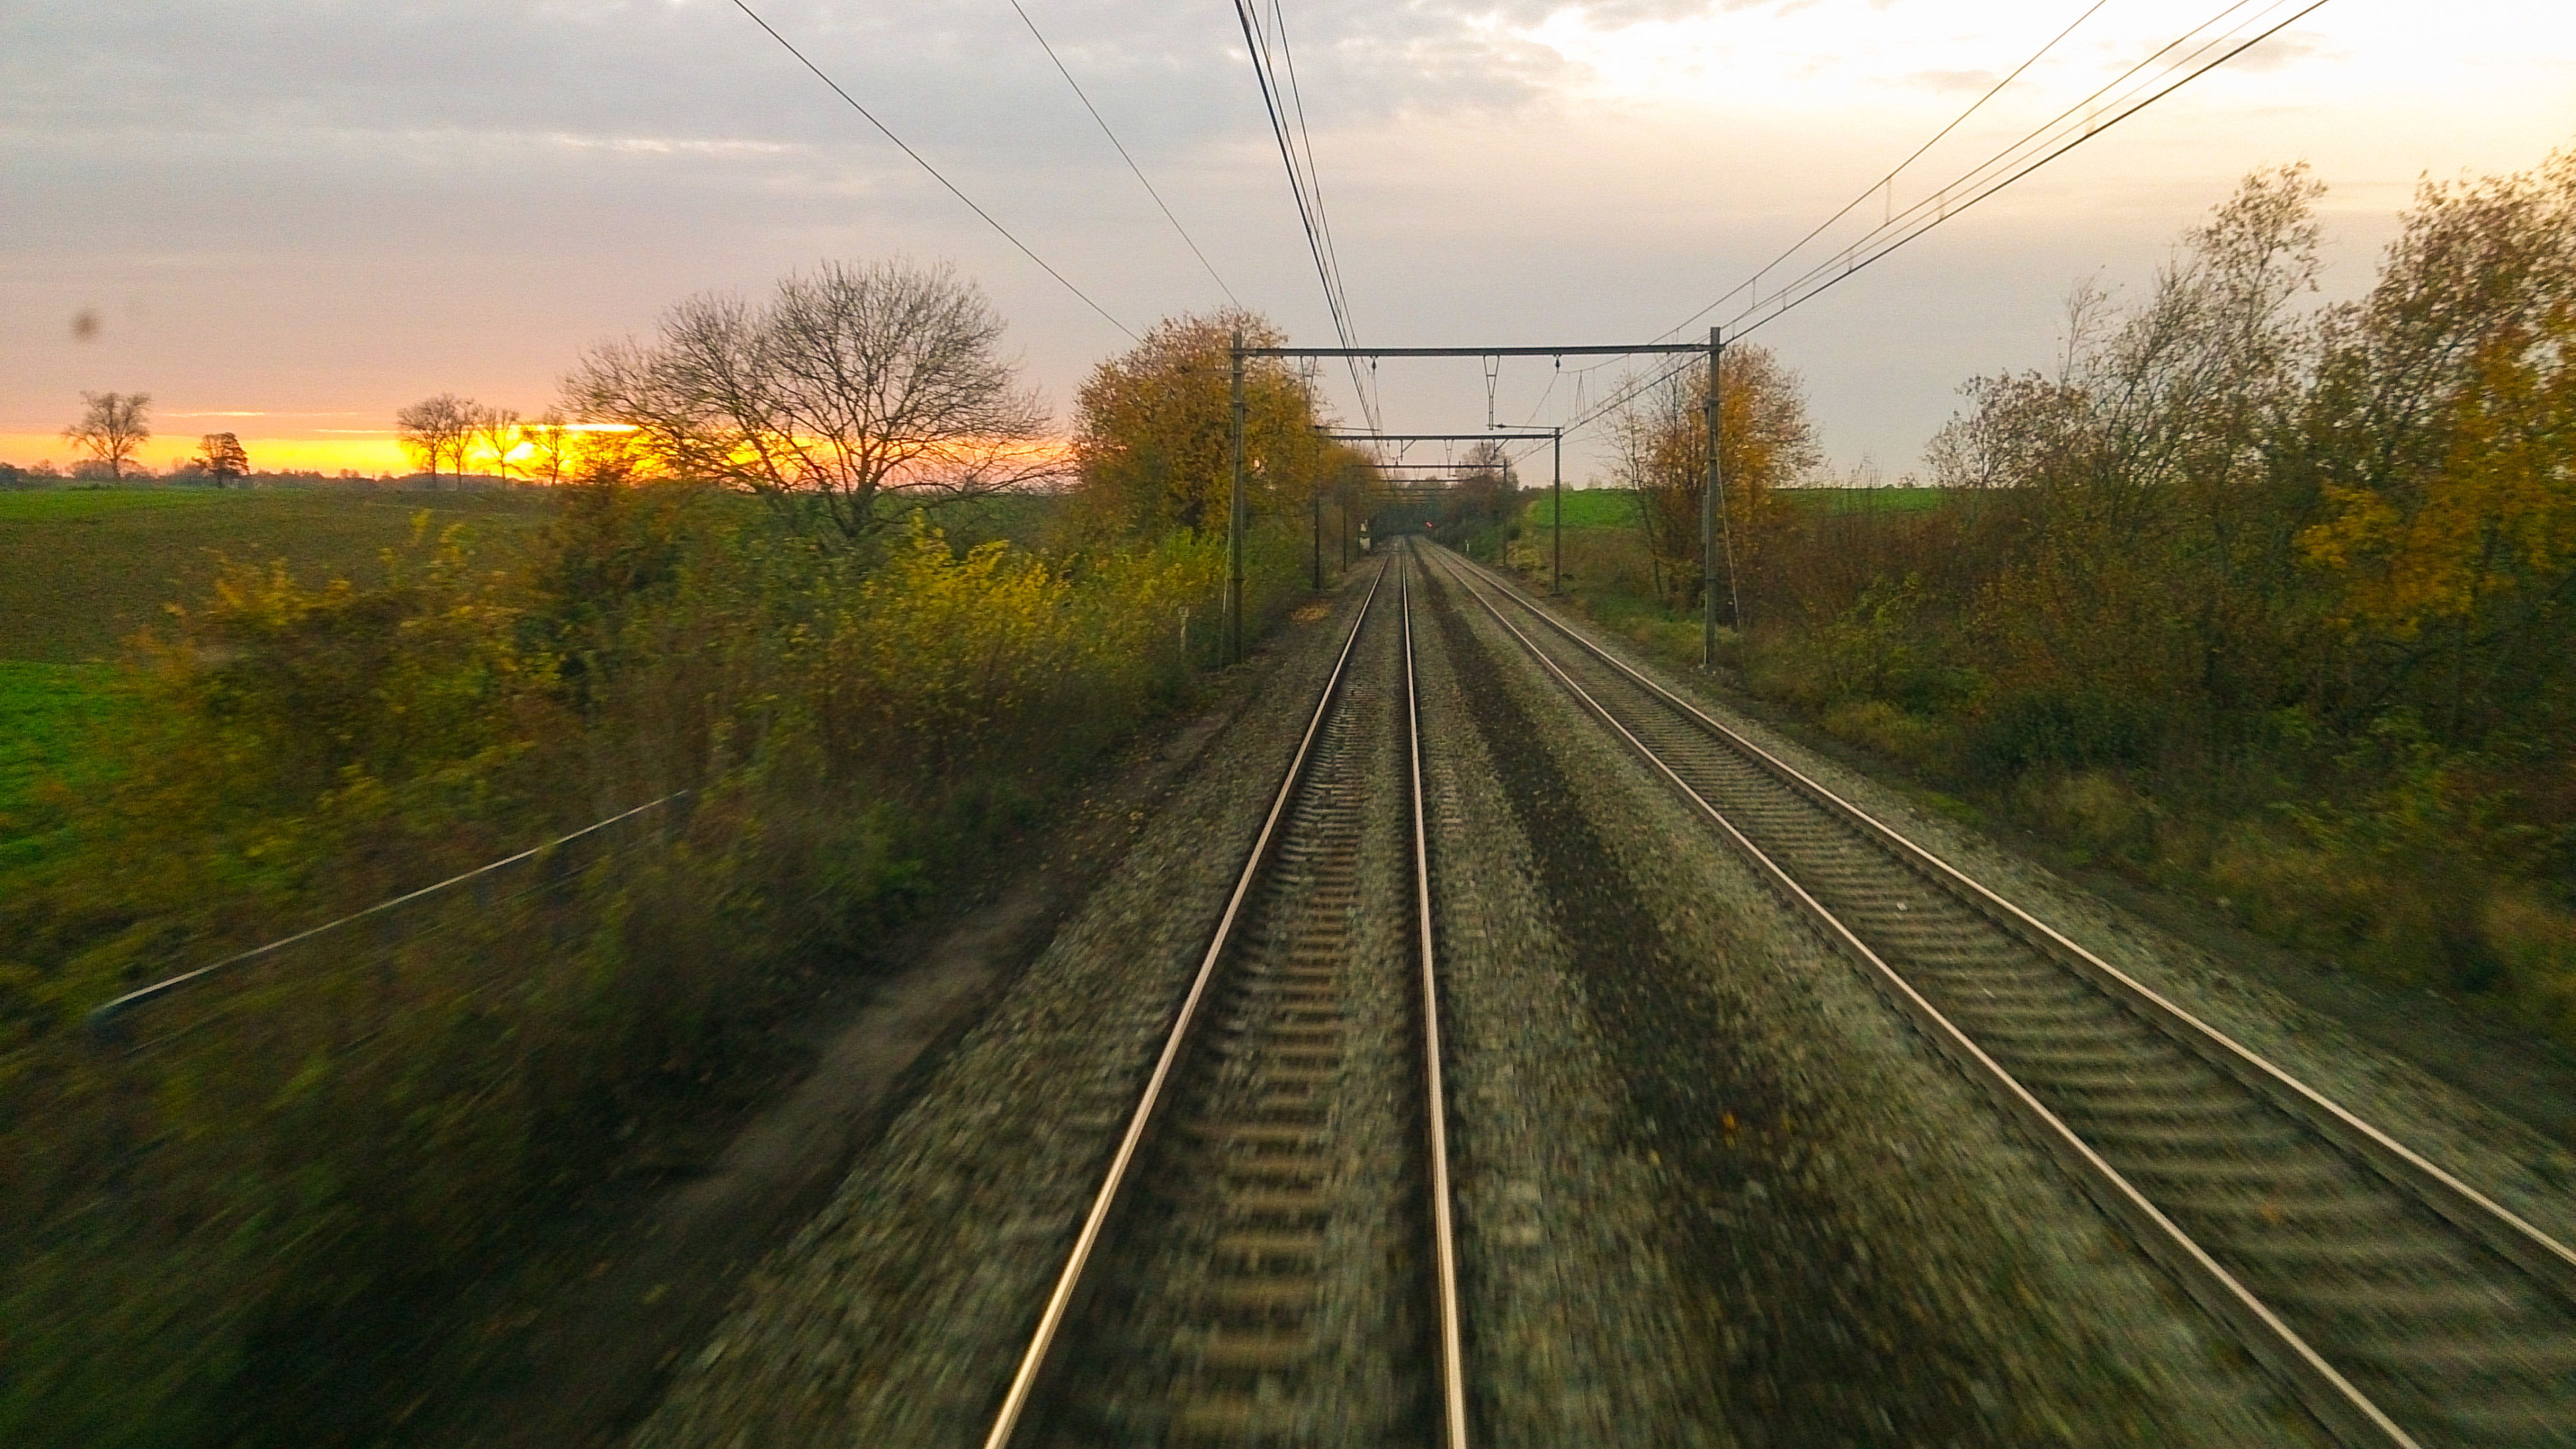 railroad track, rail transportation, the way forward, transportation, diminishing perspective, vanishing point, sky, landscape, tree, electricity pylon, power line, railway track, cloud - sky, growth, nature, field, straight, sunset, public transportation, tranquility